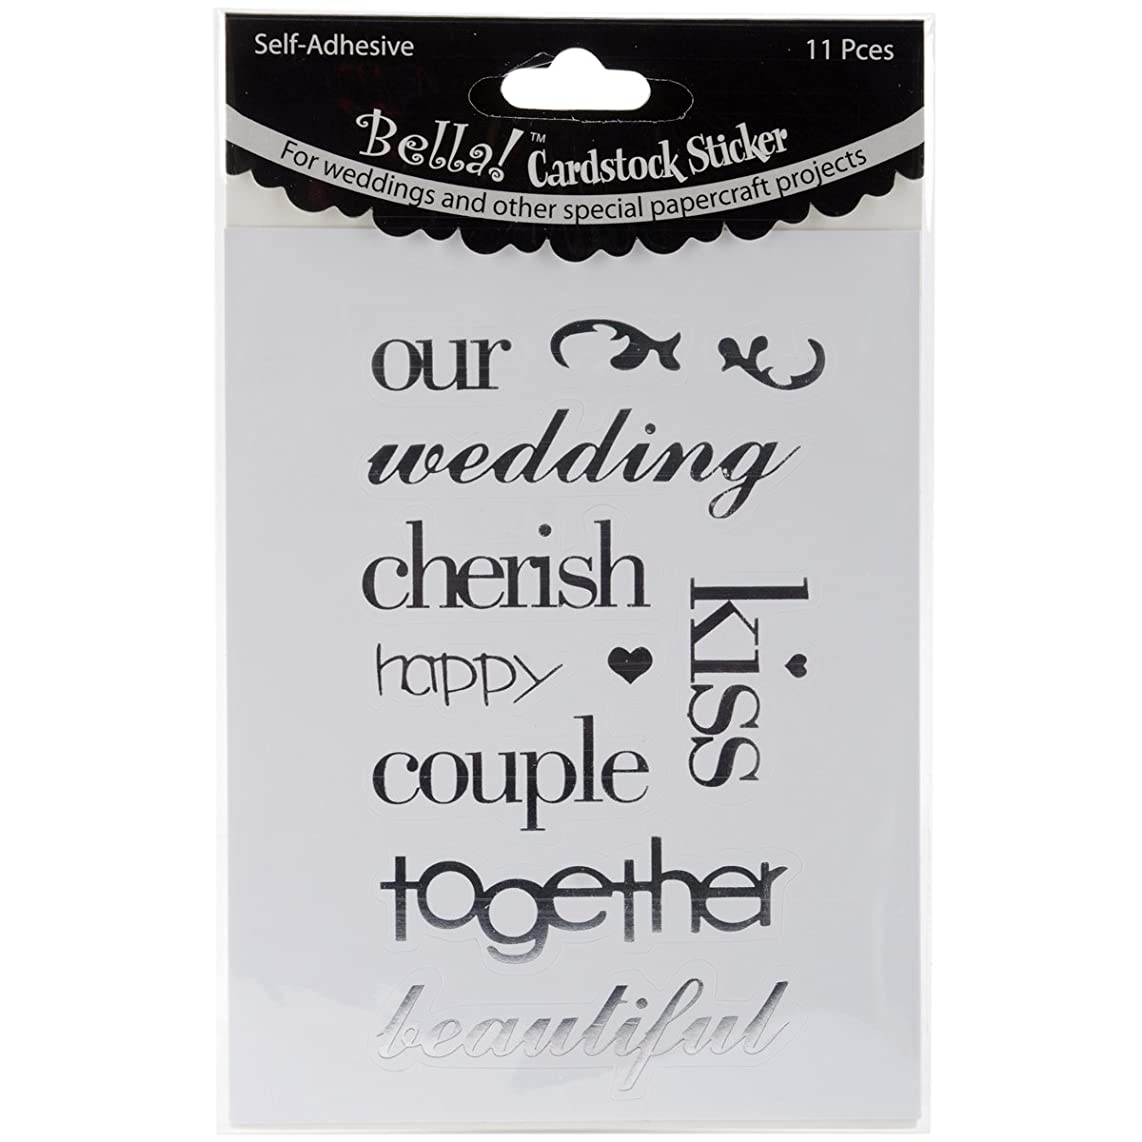 Ruby Rock-It Bella Wedding Words Cardstock Stickers, Silver, 11-Pack